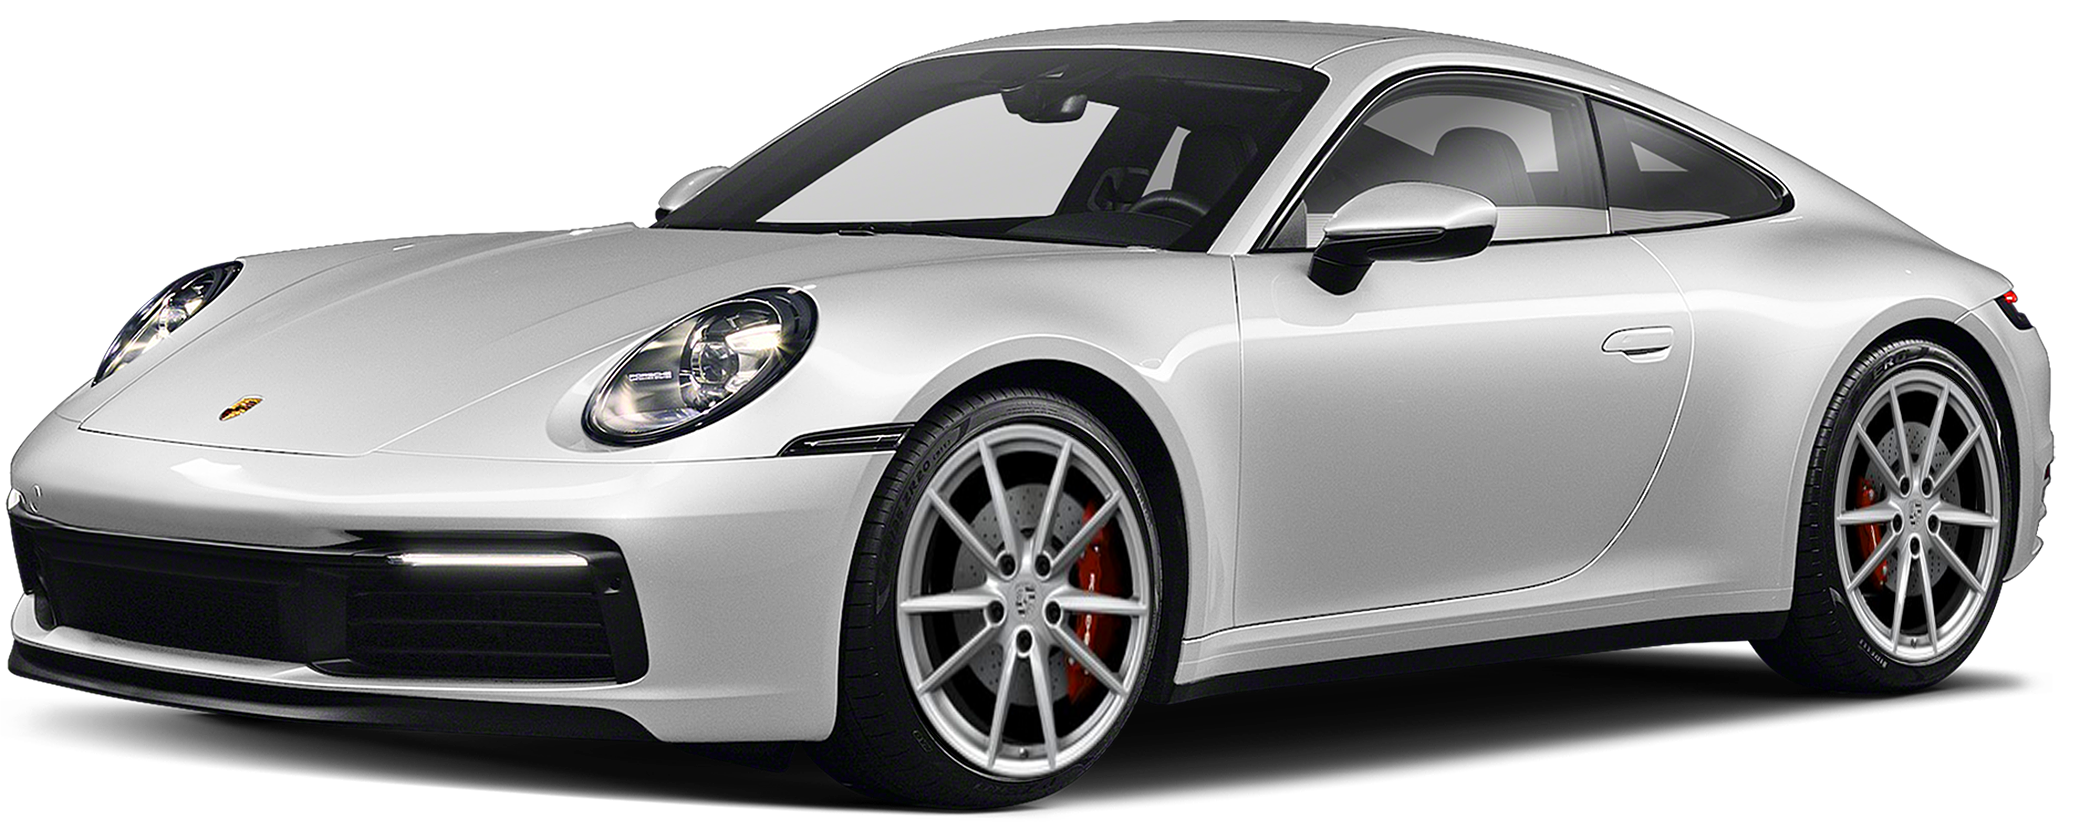 http://images.dealer.com/ddc/vehicles/2020/Porsche/911/Coupe/trim_Carrera_S_a3bc28/perspective/front-left/2019_76.png